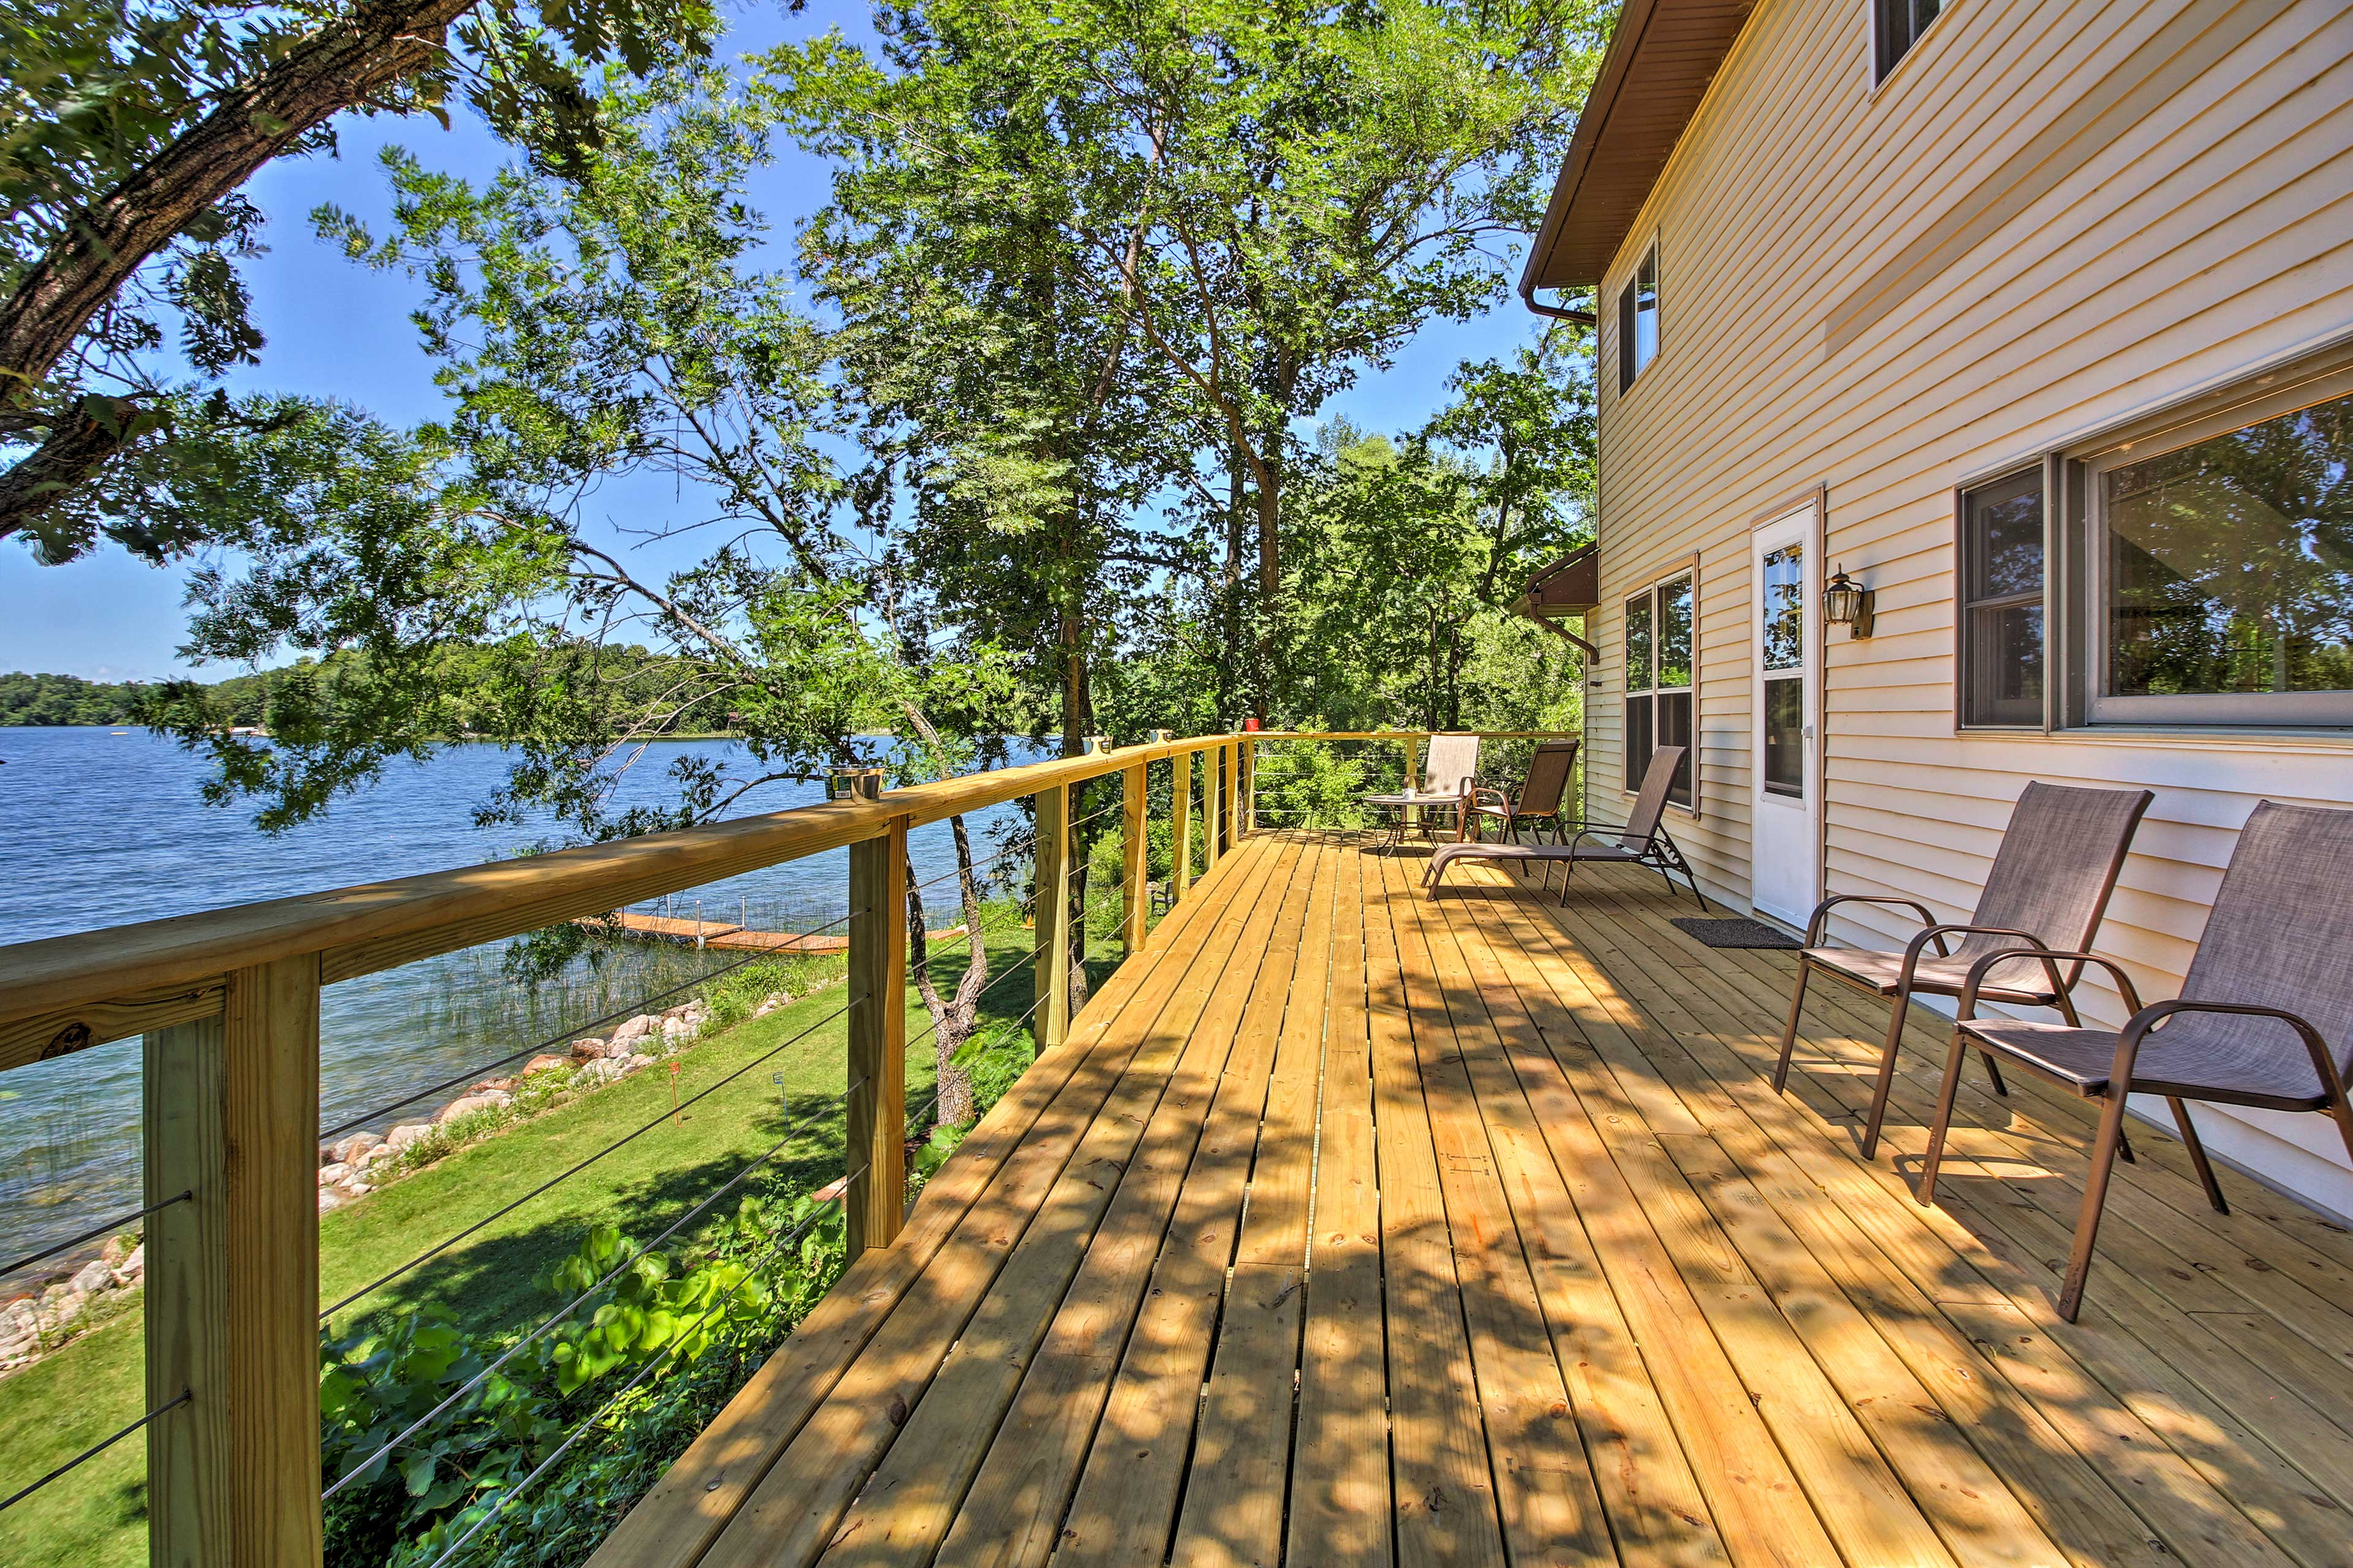 Get away to the lake at this 3-bedroom, 1-bathroom Brandon vacation rental home.